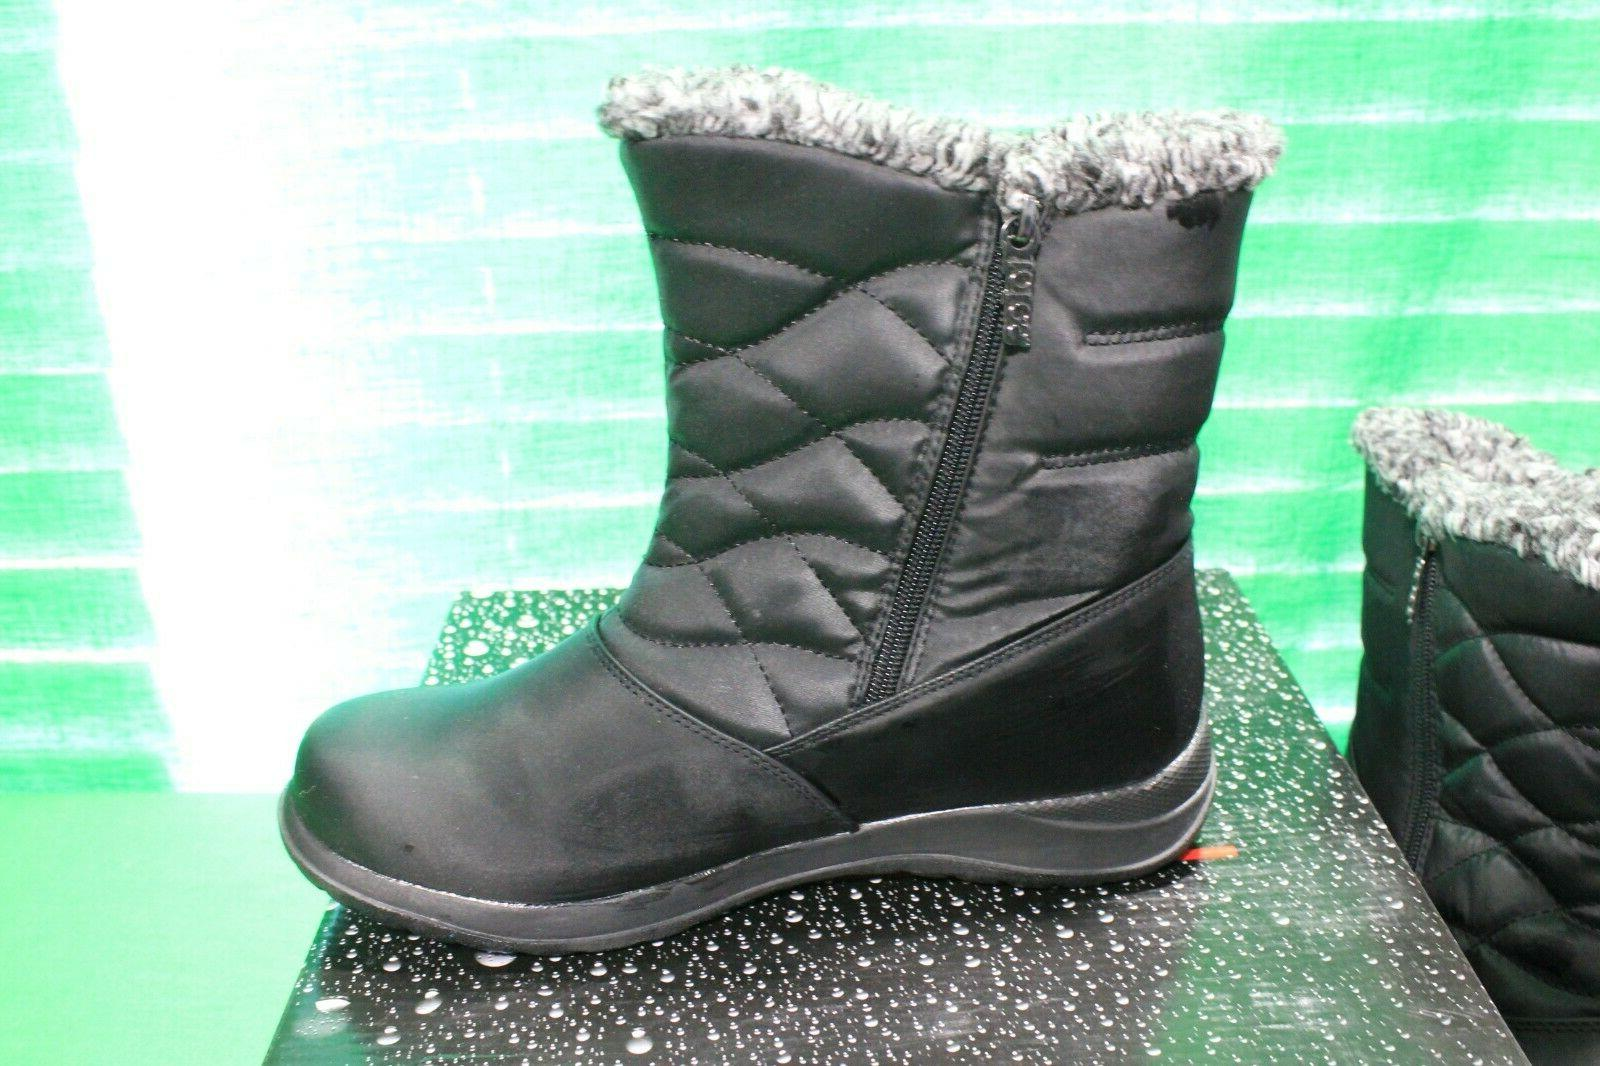 Women's Babbie snow boots, Size 10 Med